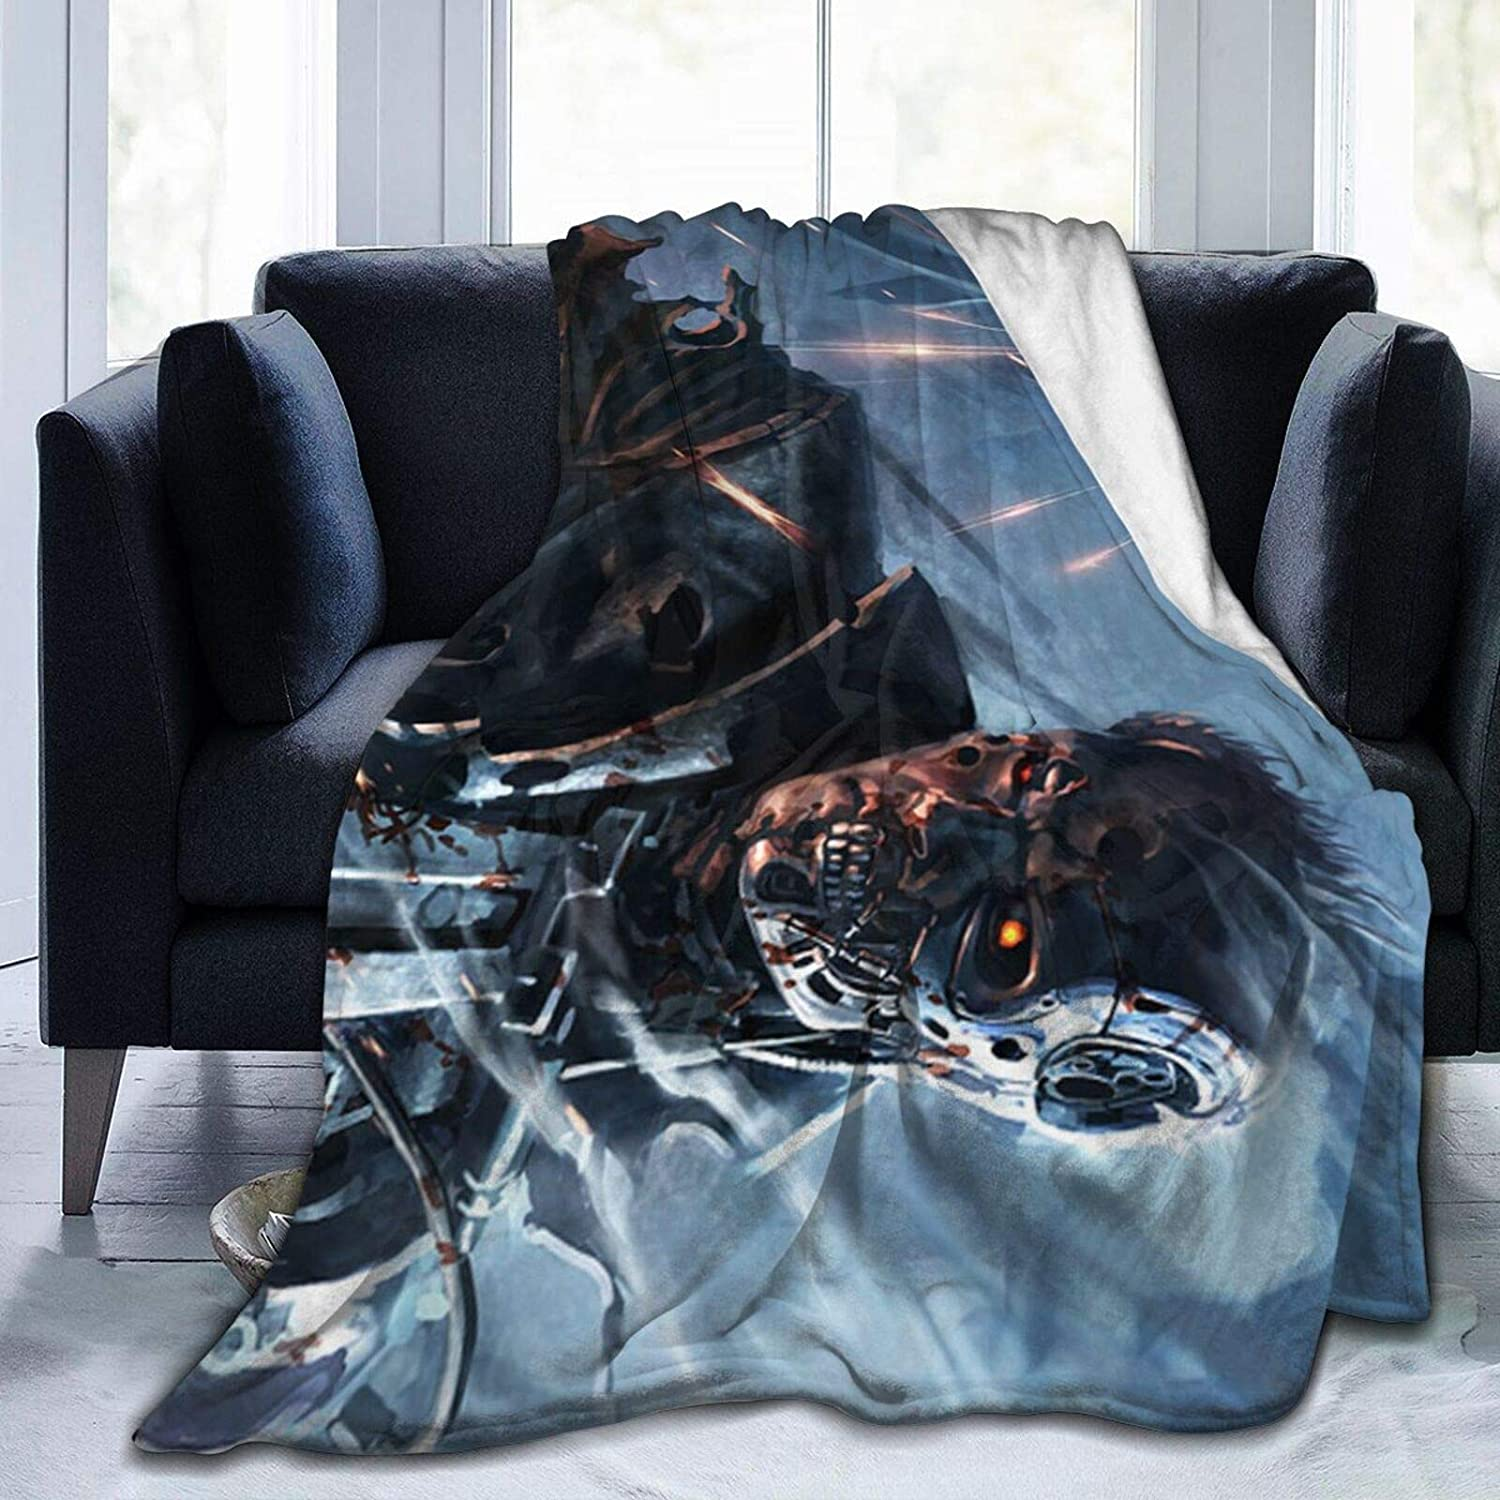 The Terminator Ultra Soft Micro Fleece Blanket Throw Blanket Lightweight Soft and Warm for Men Women Kids Couch and Bed Home decor80 x60